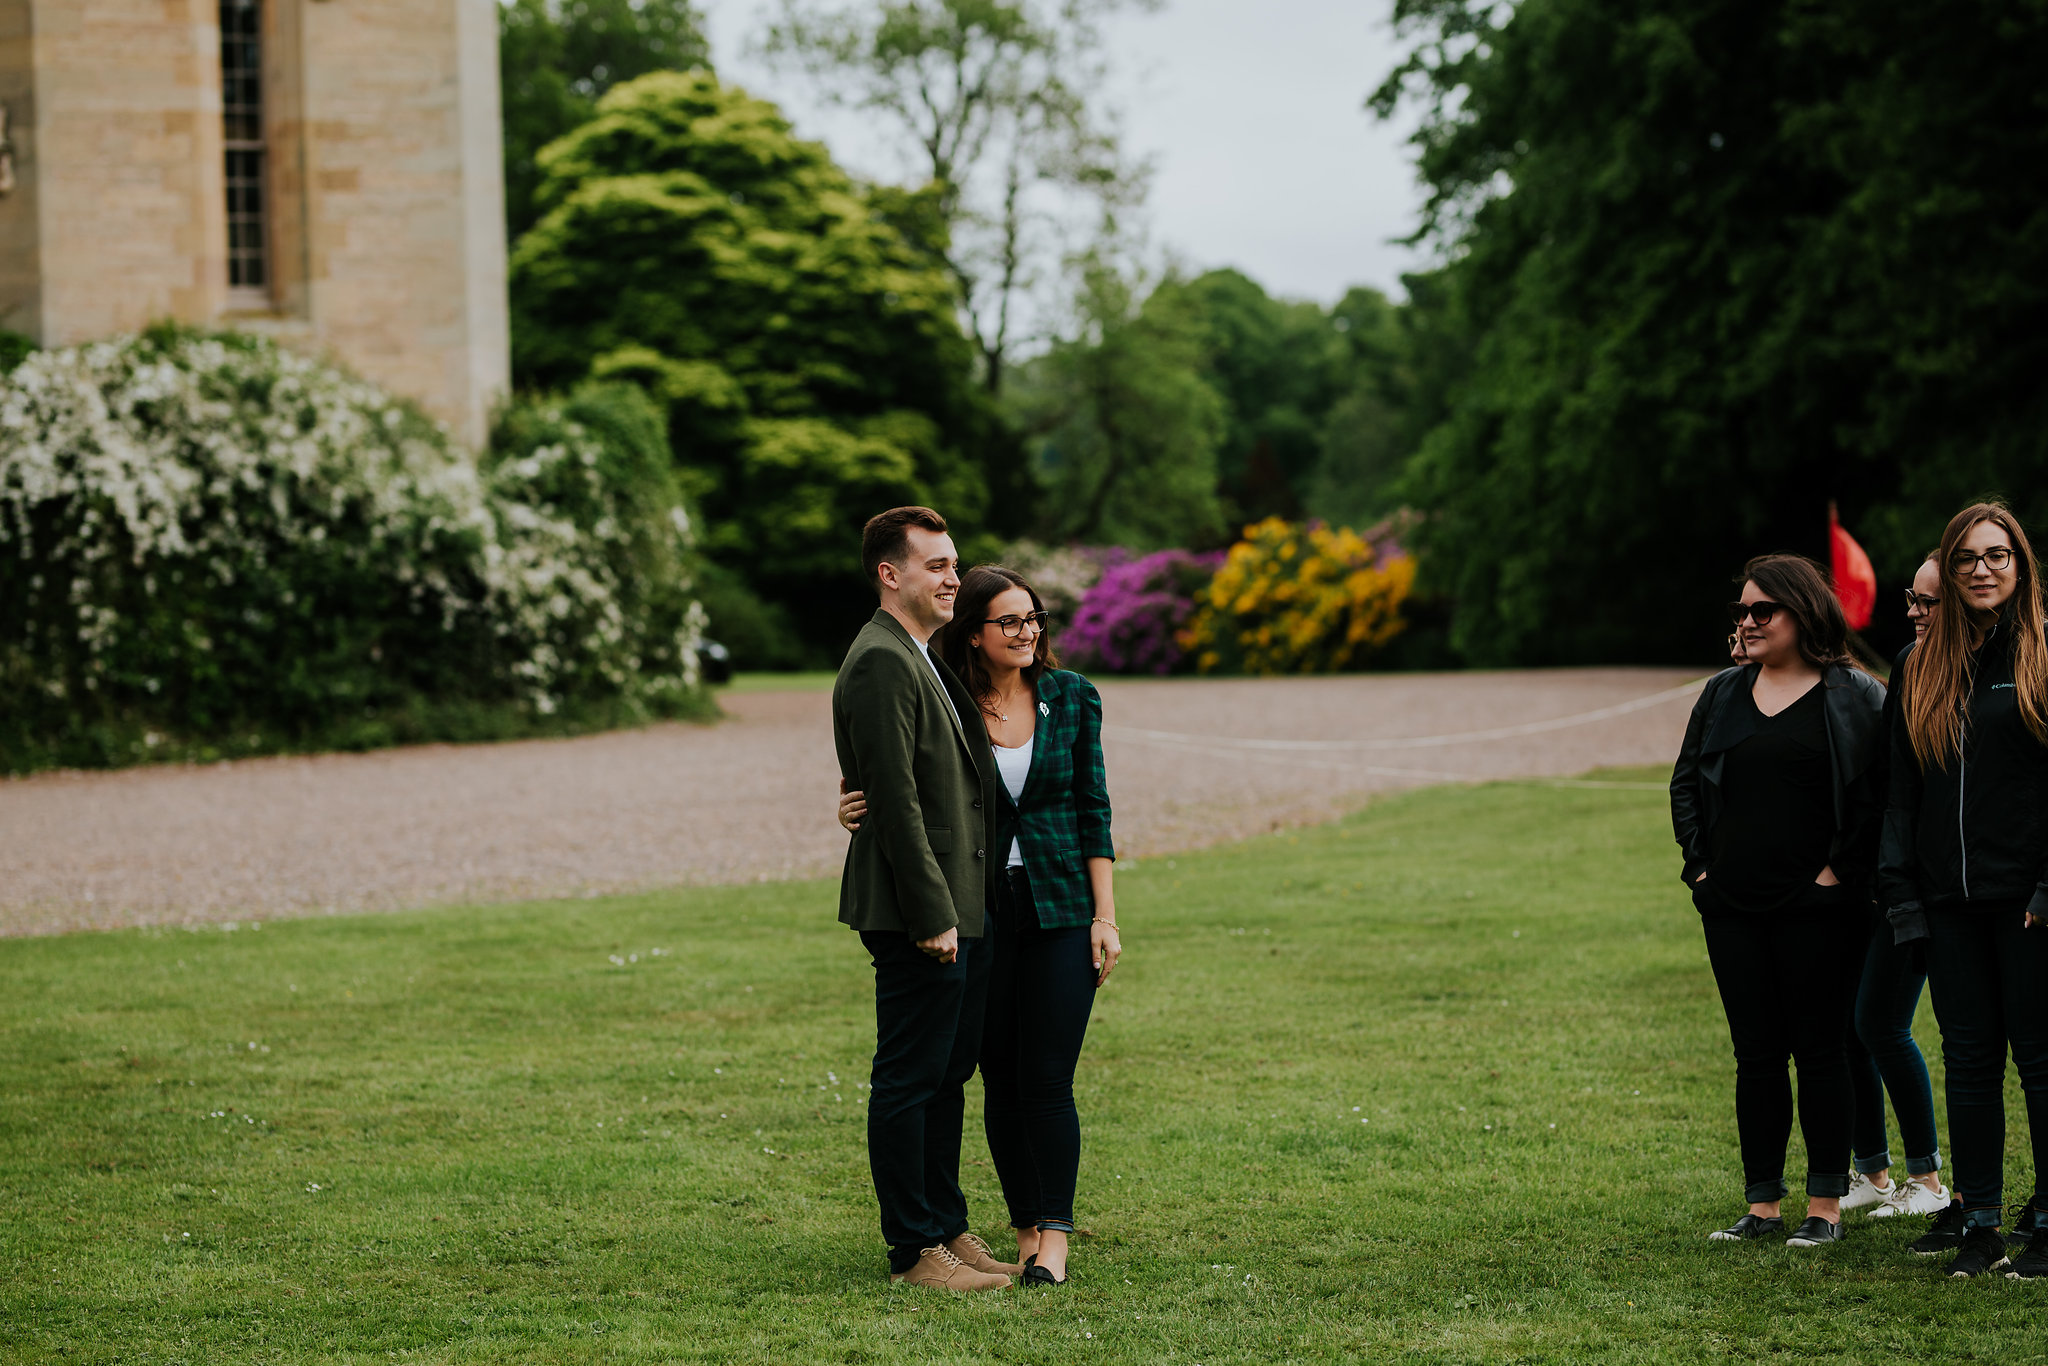 Duns_Castle_wedding_photographer_ross_alexander_photography (4).jpg